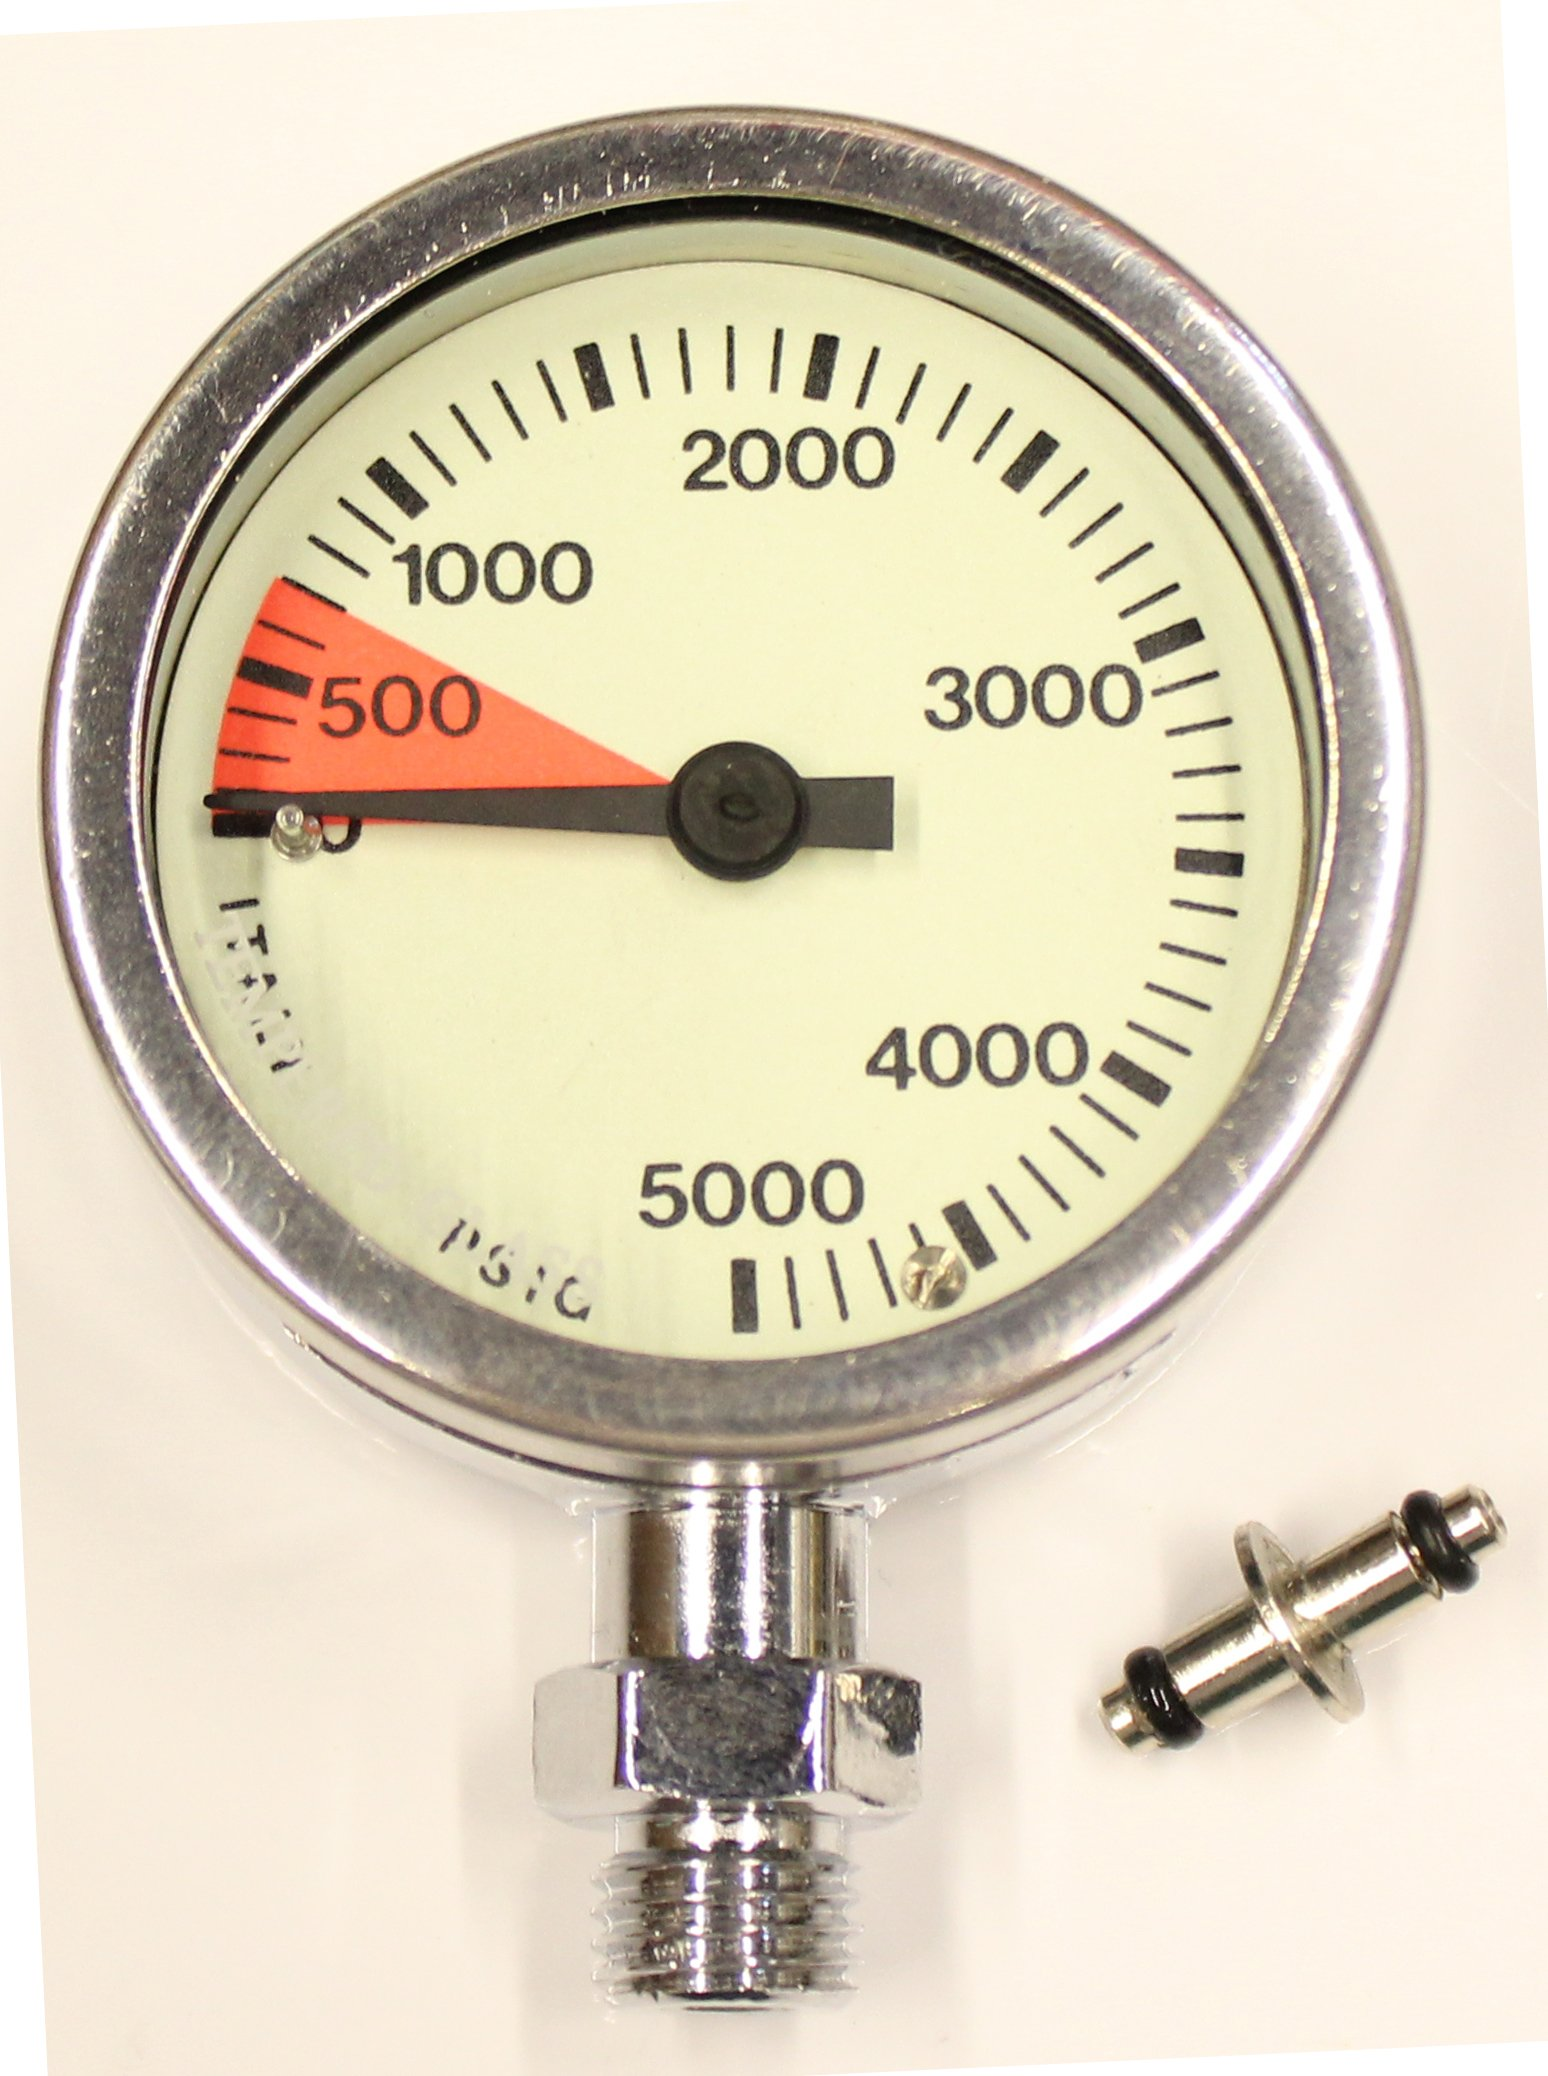 SOPRAS SUB ''PLATED TEK'' BRASS SPG IMPERIAL PRESSURE GAUGE PSI 2 INCH Chrome plated